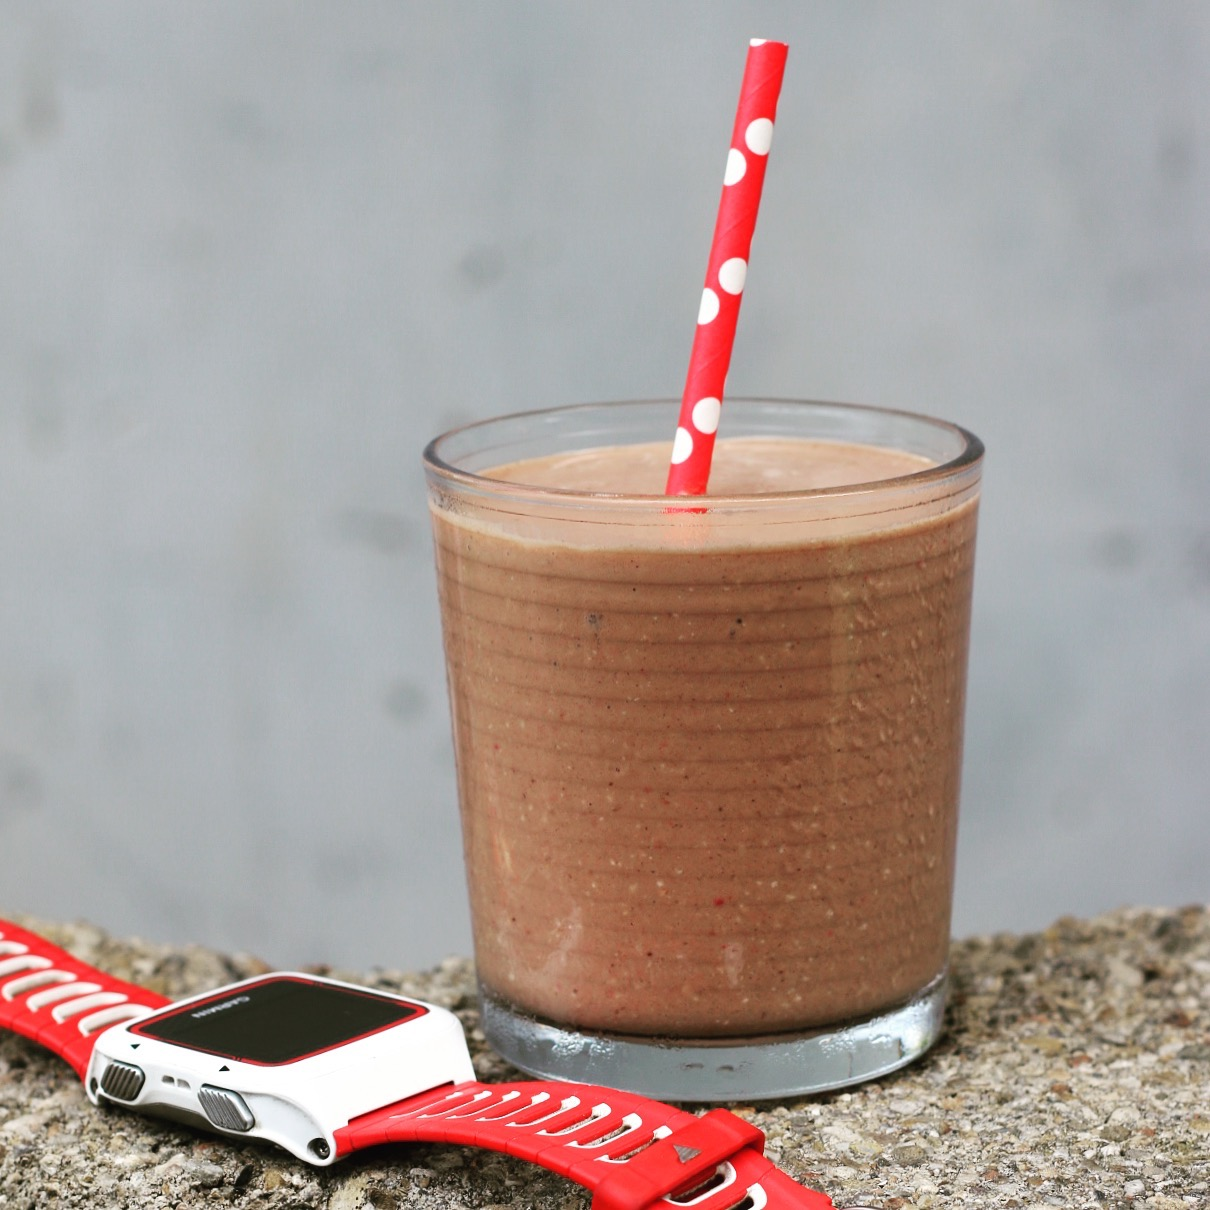 Add a smoothie the day before your race to increase calories + carbs in a healthy way.